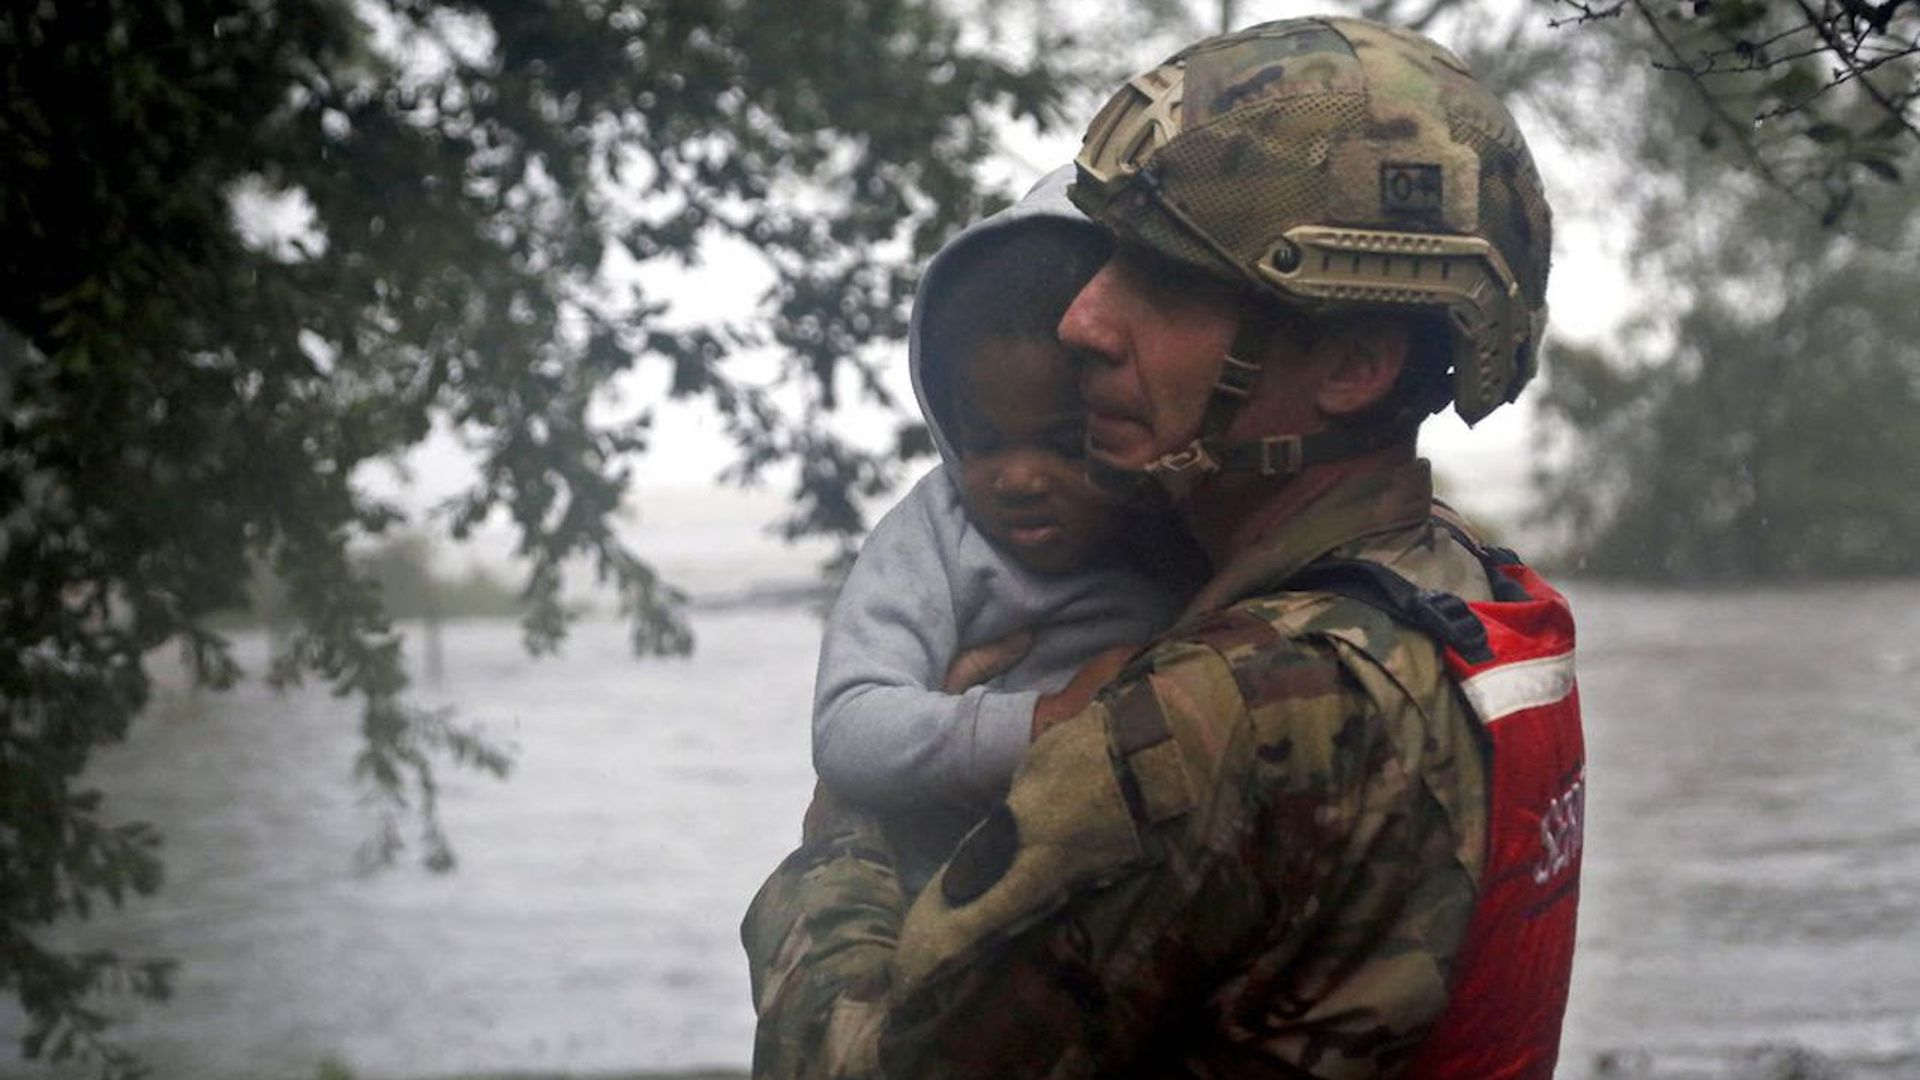 A National Guard member carries a child.